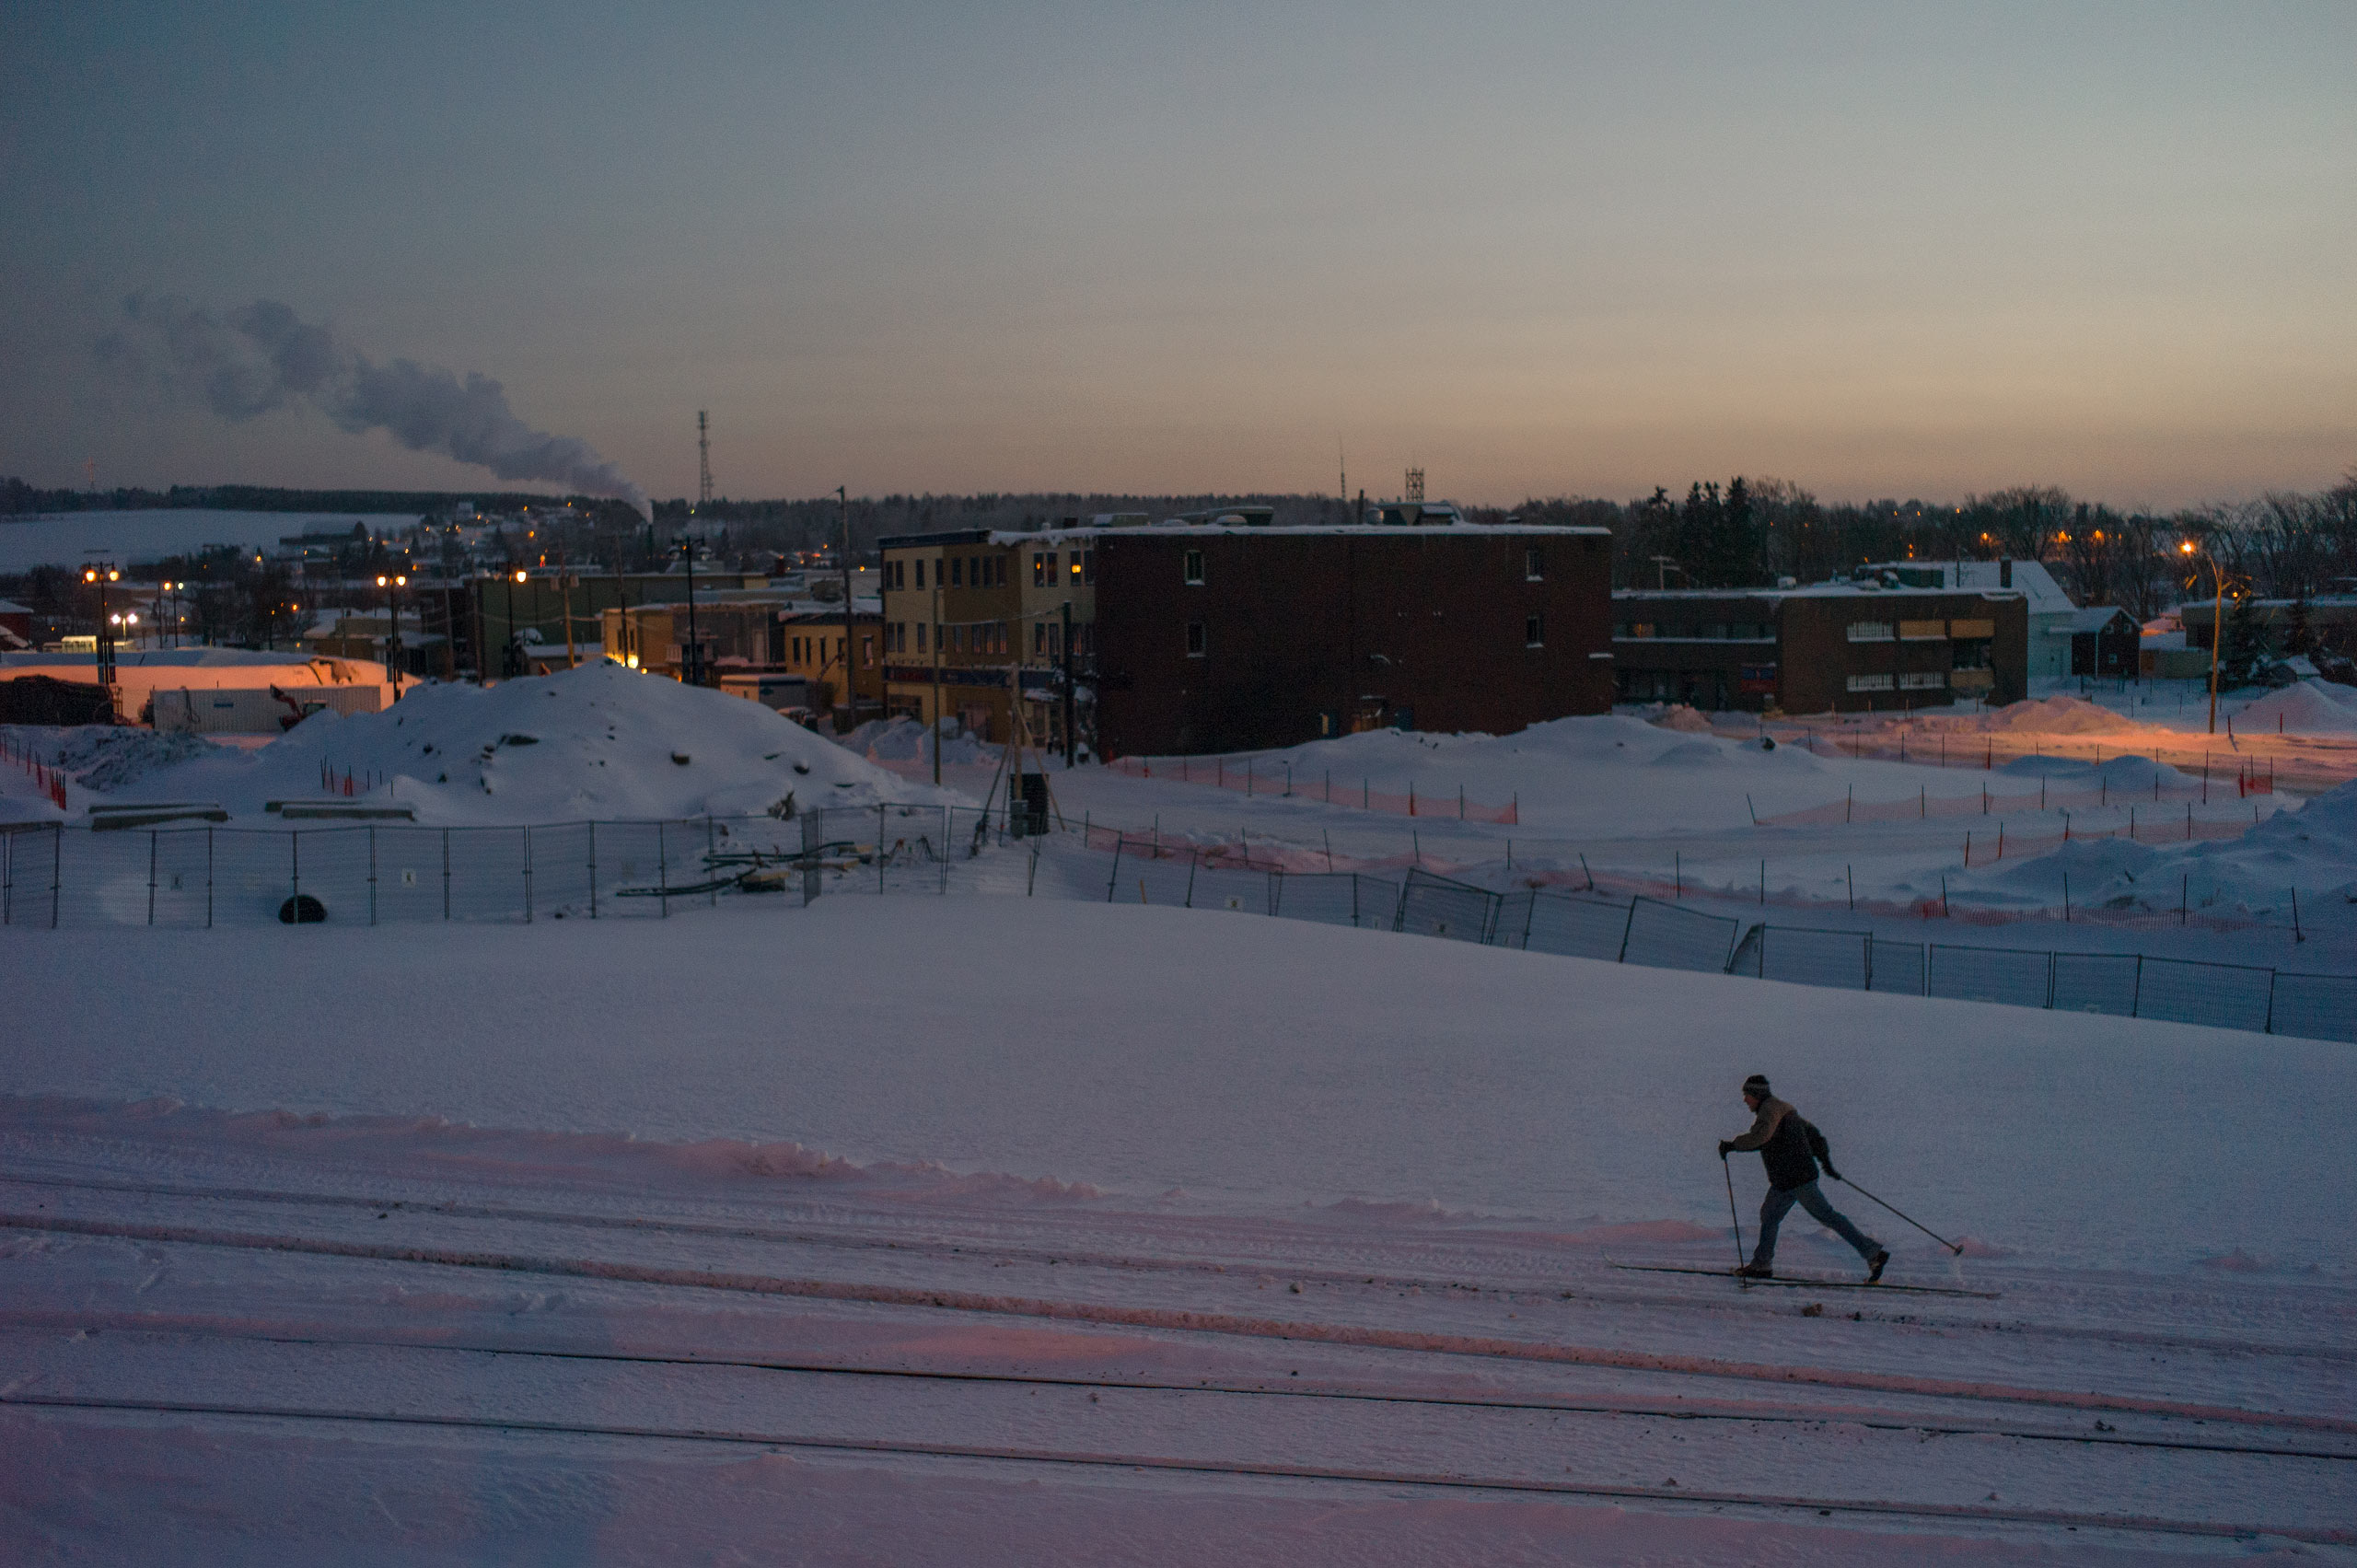 A cross-country skier on the rehabilitated train tracks next to the still-closed Red Zone. Dec. 31, 2013.